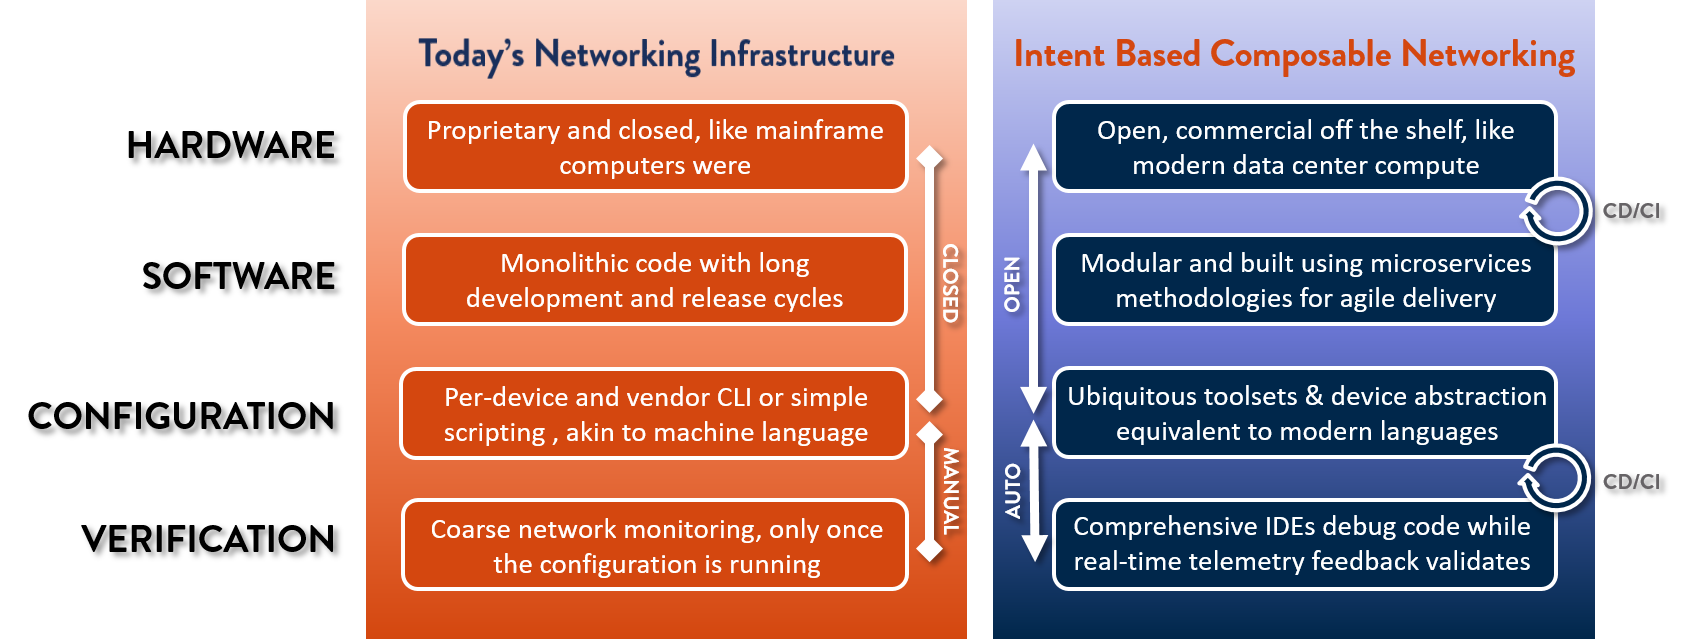 Intent-based-composable-networking